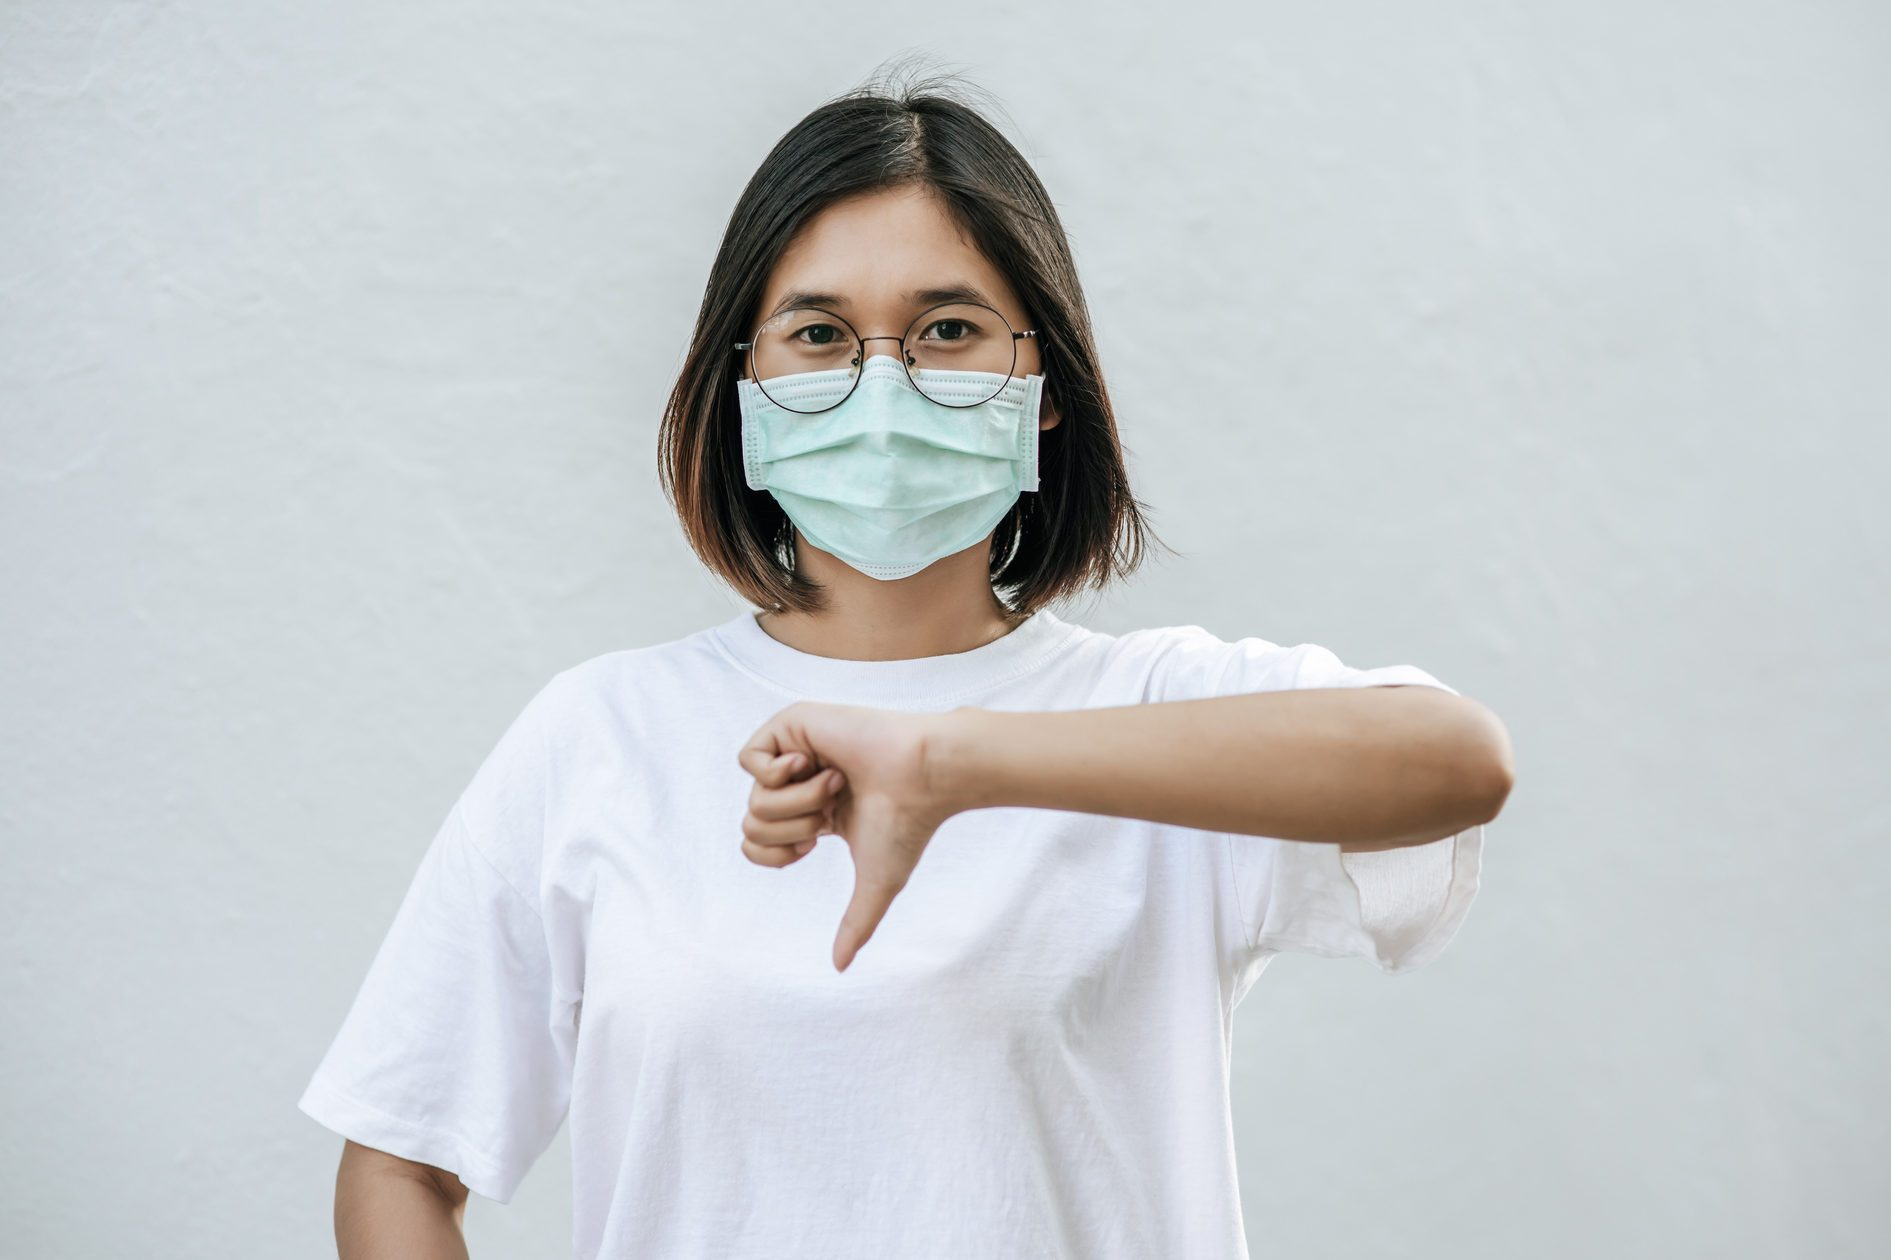 The woman is wearing a mask and pointing her thumb down.